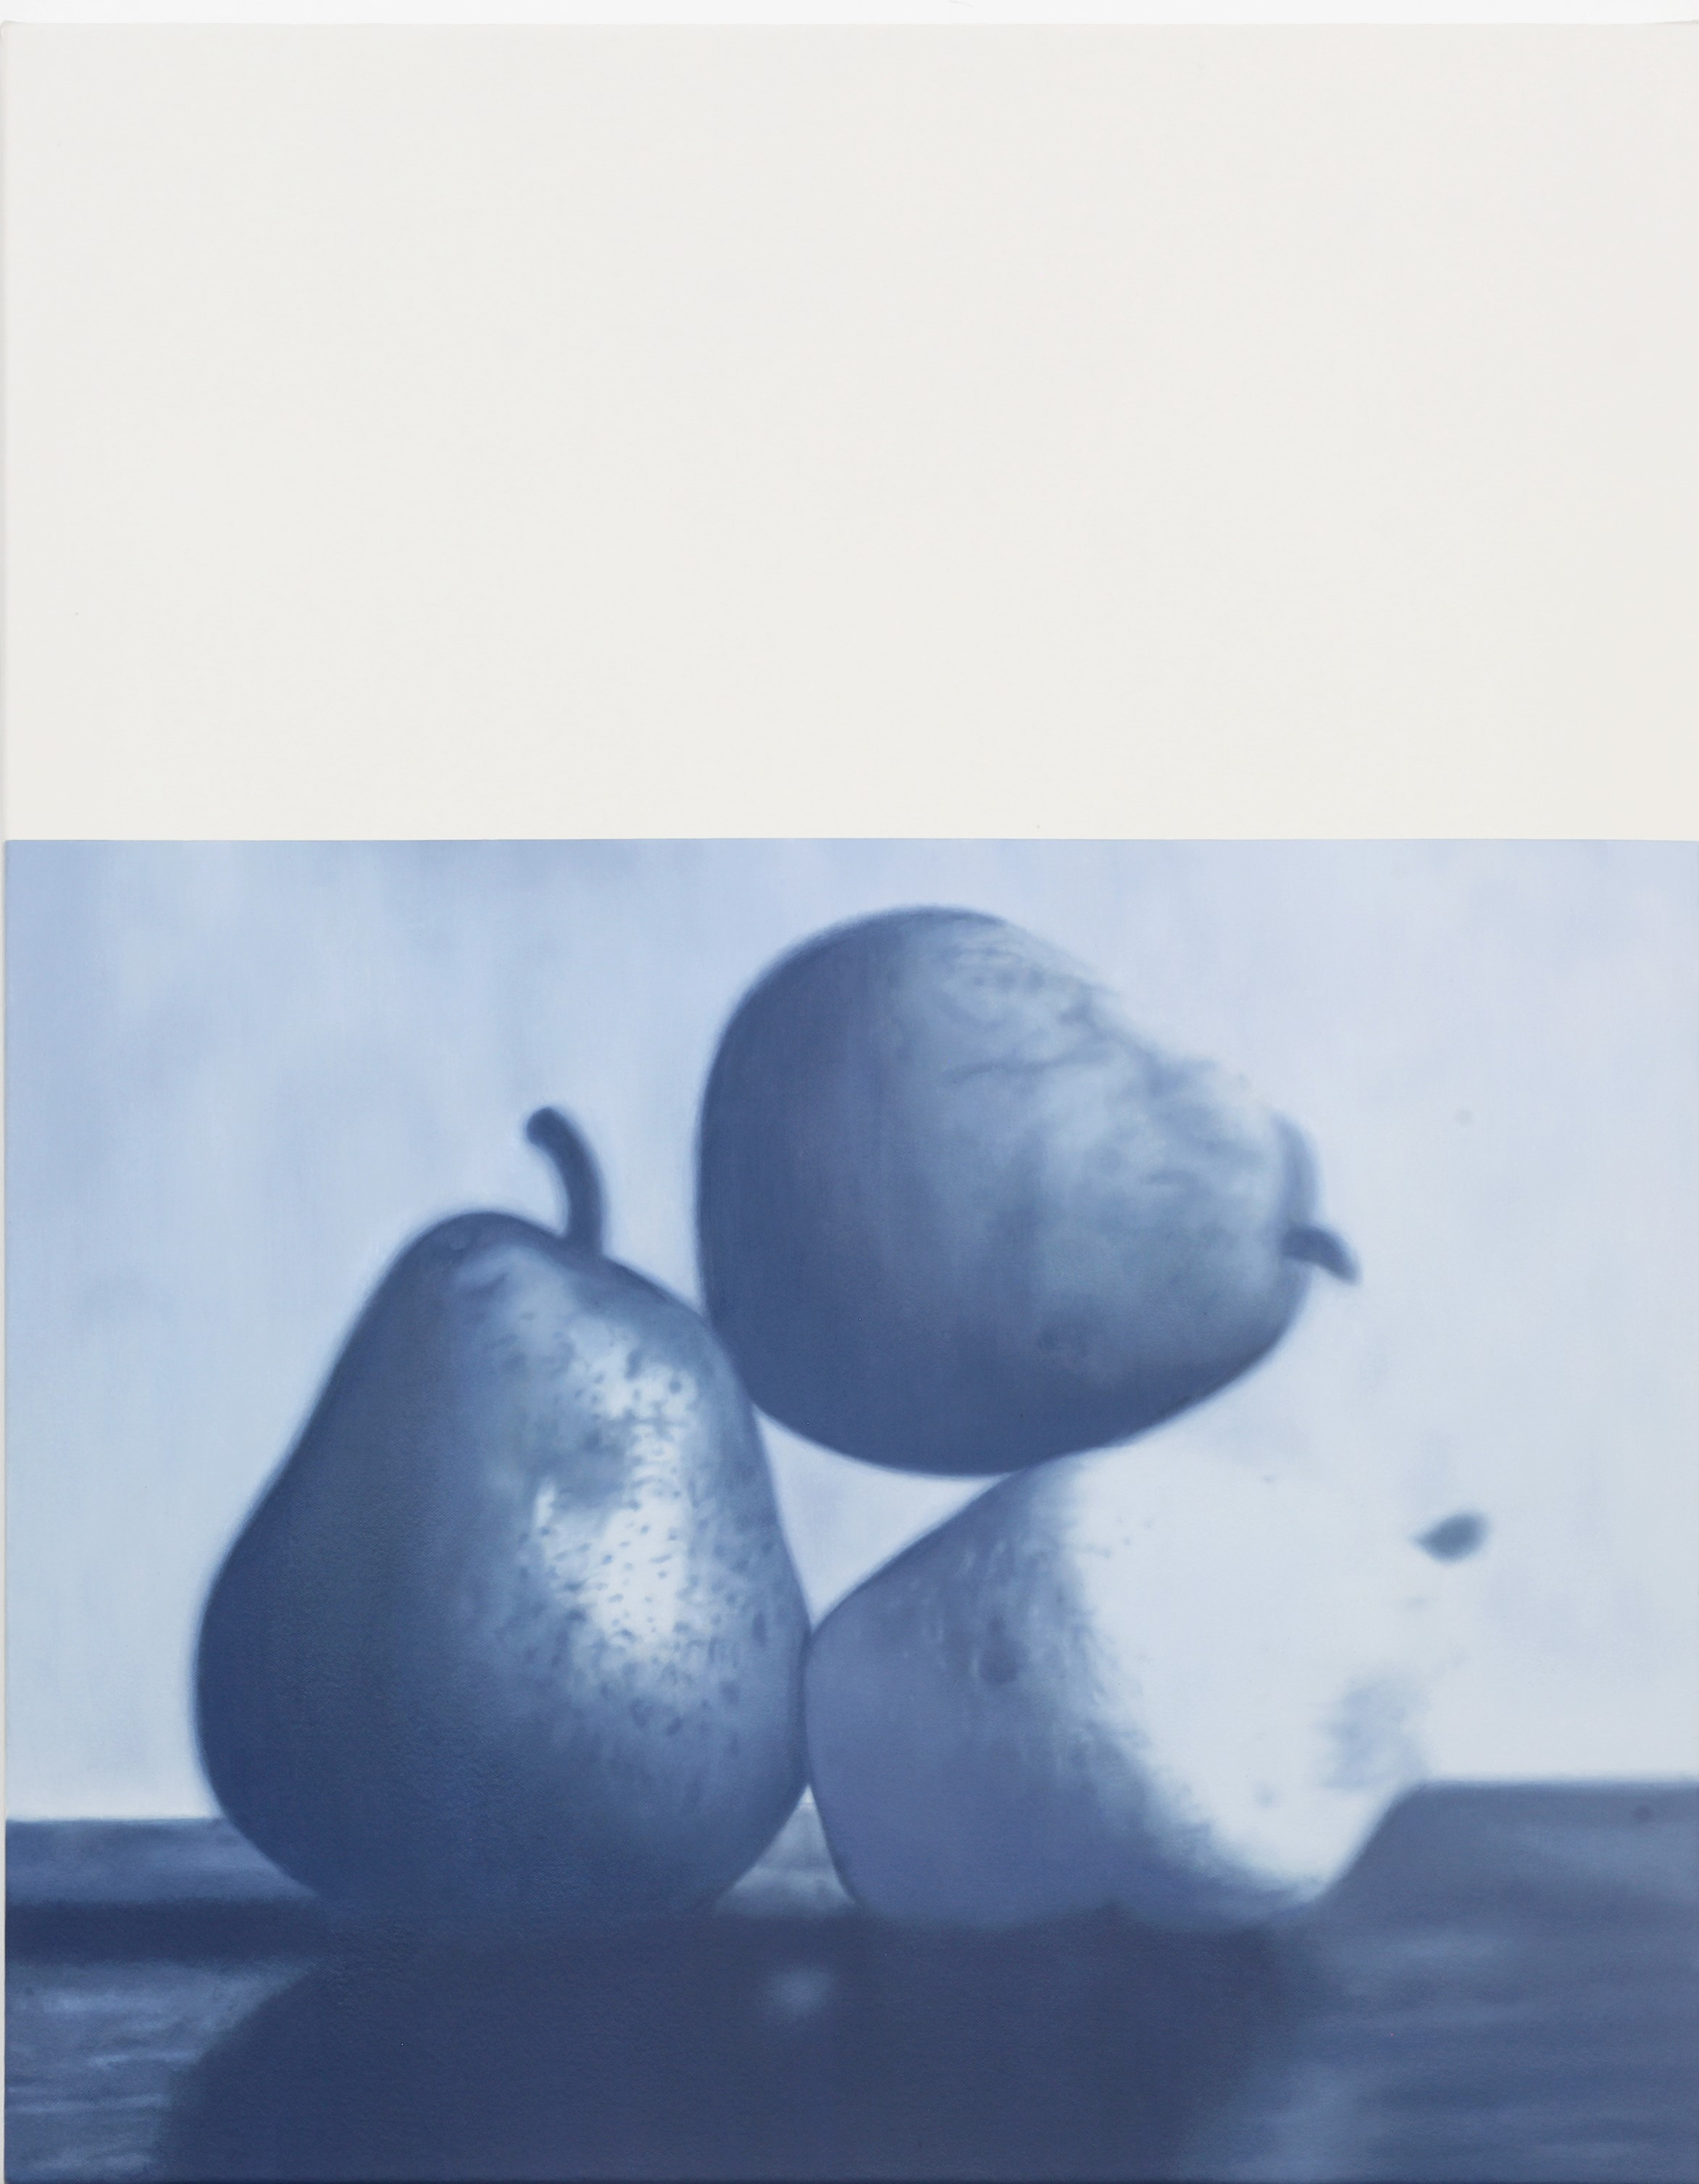 Realf Heygate, Render (Three Pears), The Auction Collective